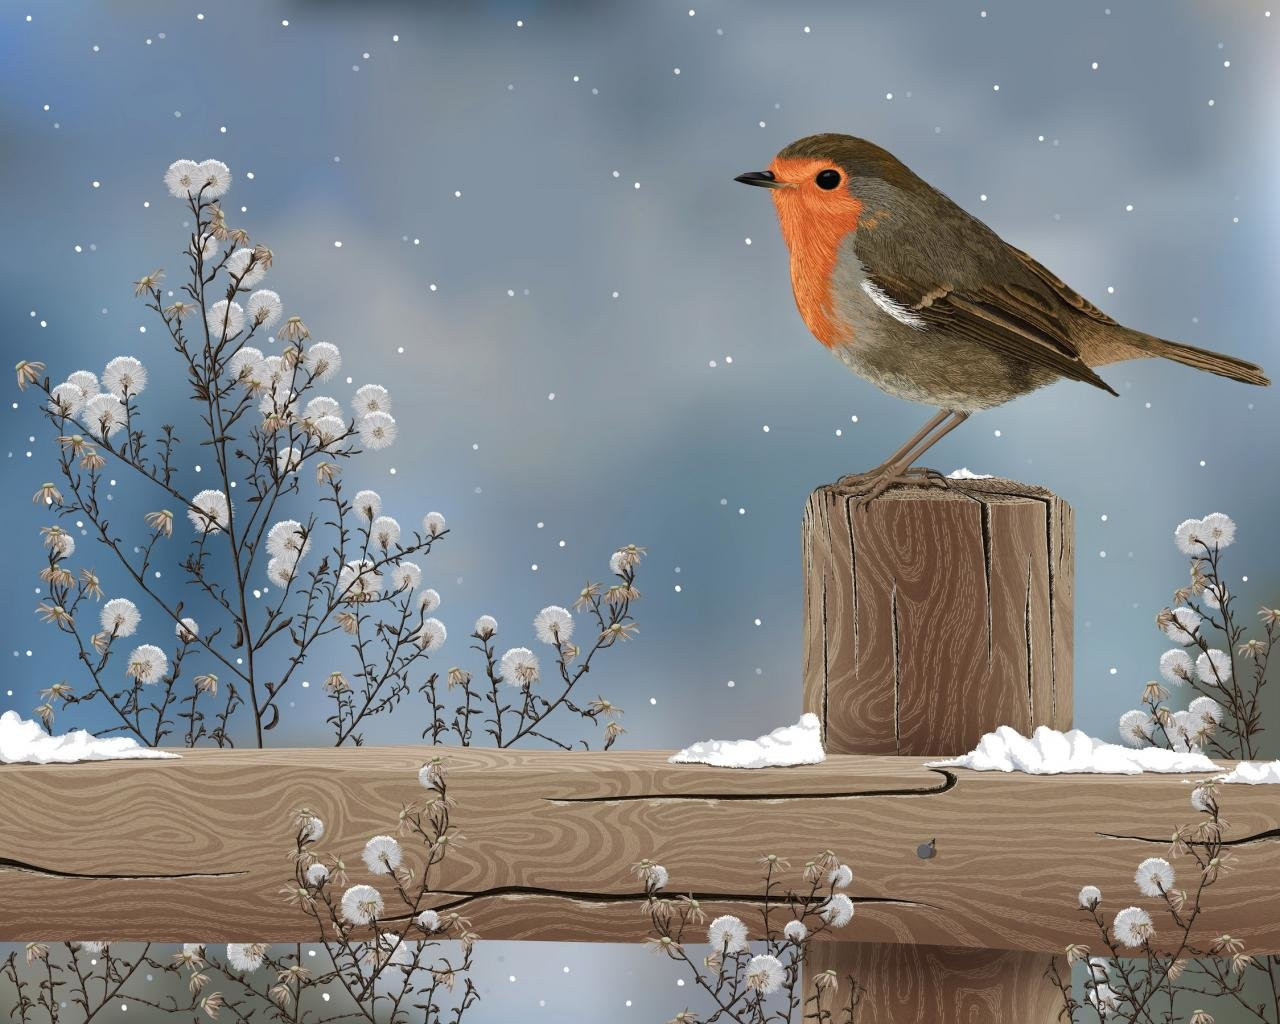 Free Robin bird high quality wallpaper ID:360151 for hd 1280x1024 PC